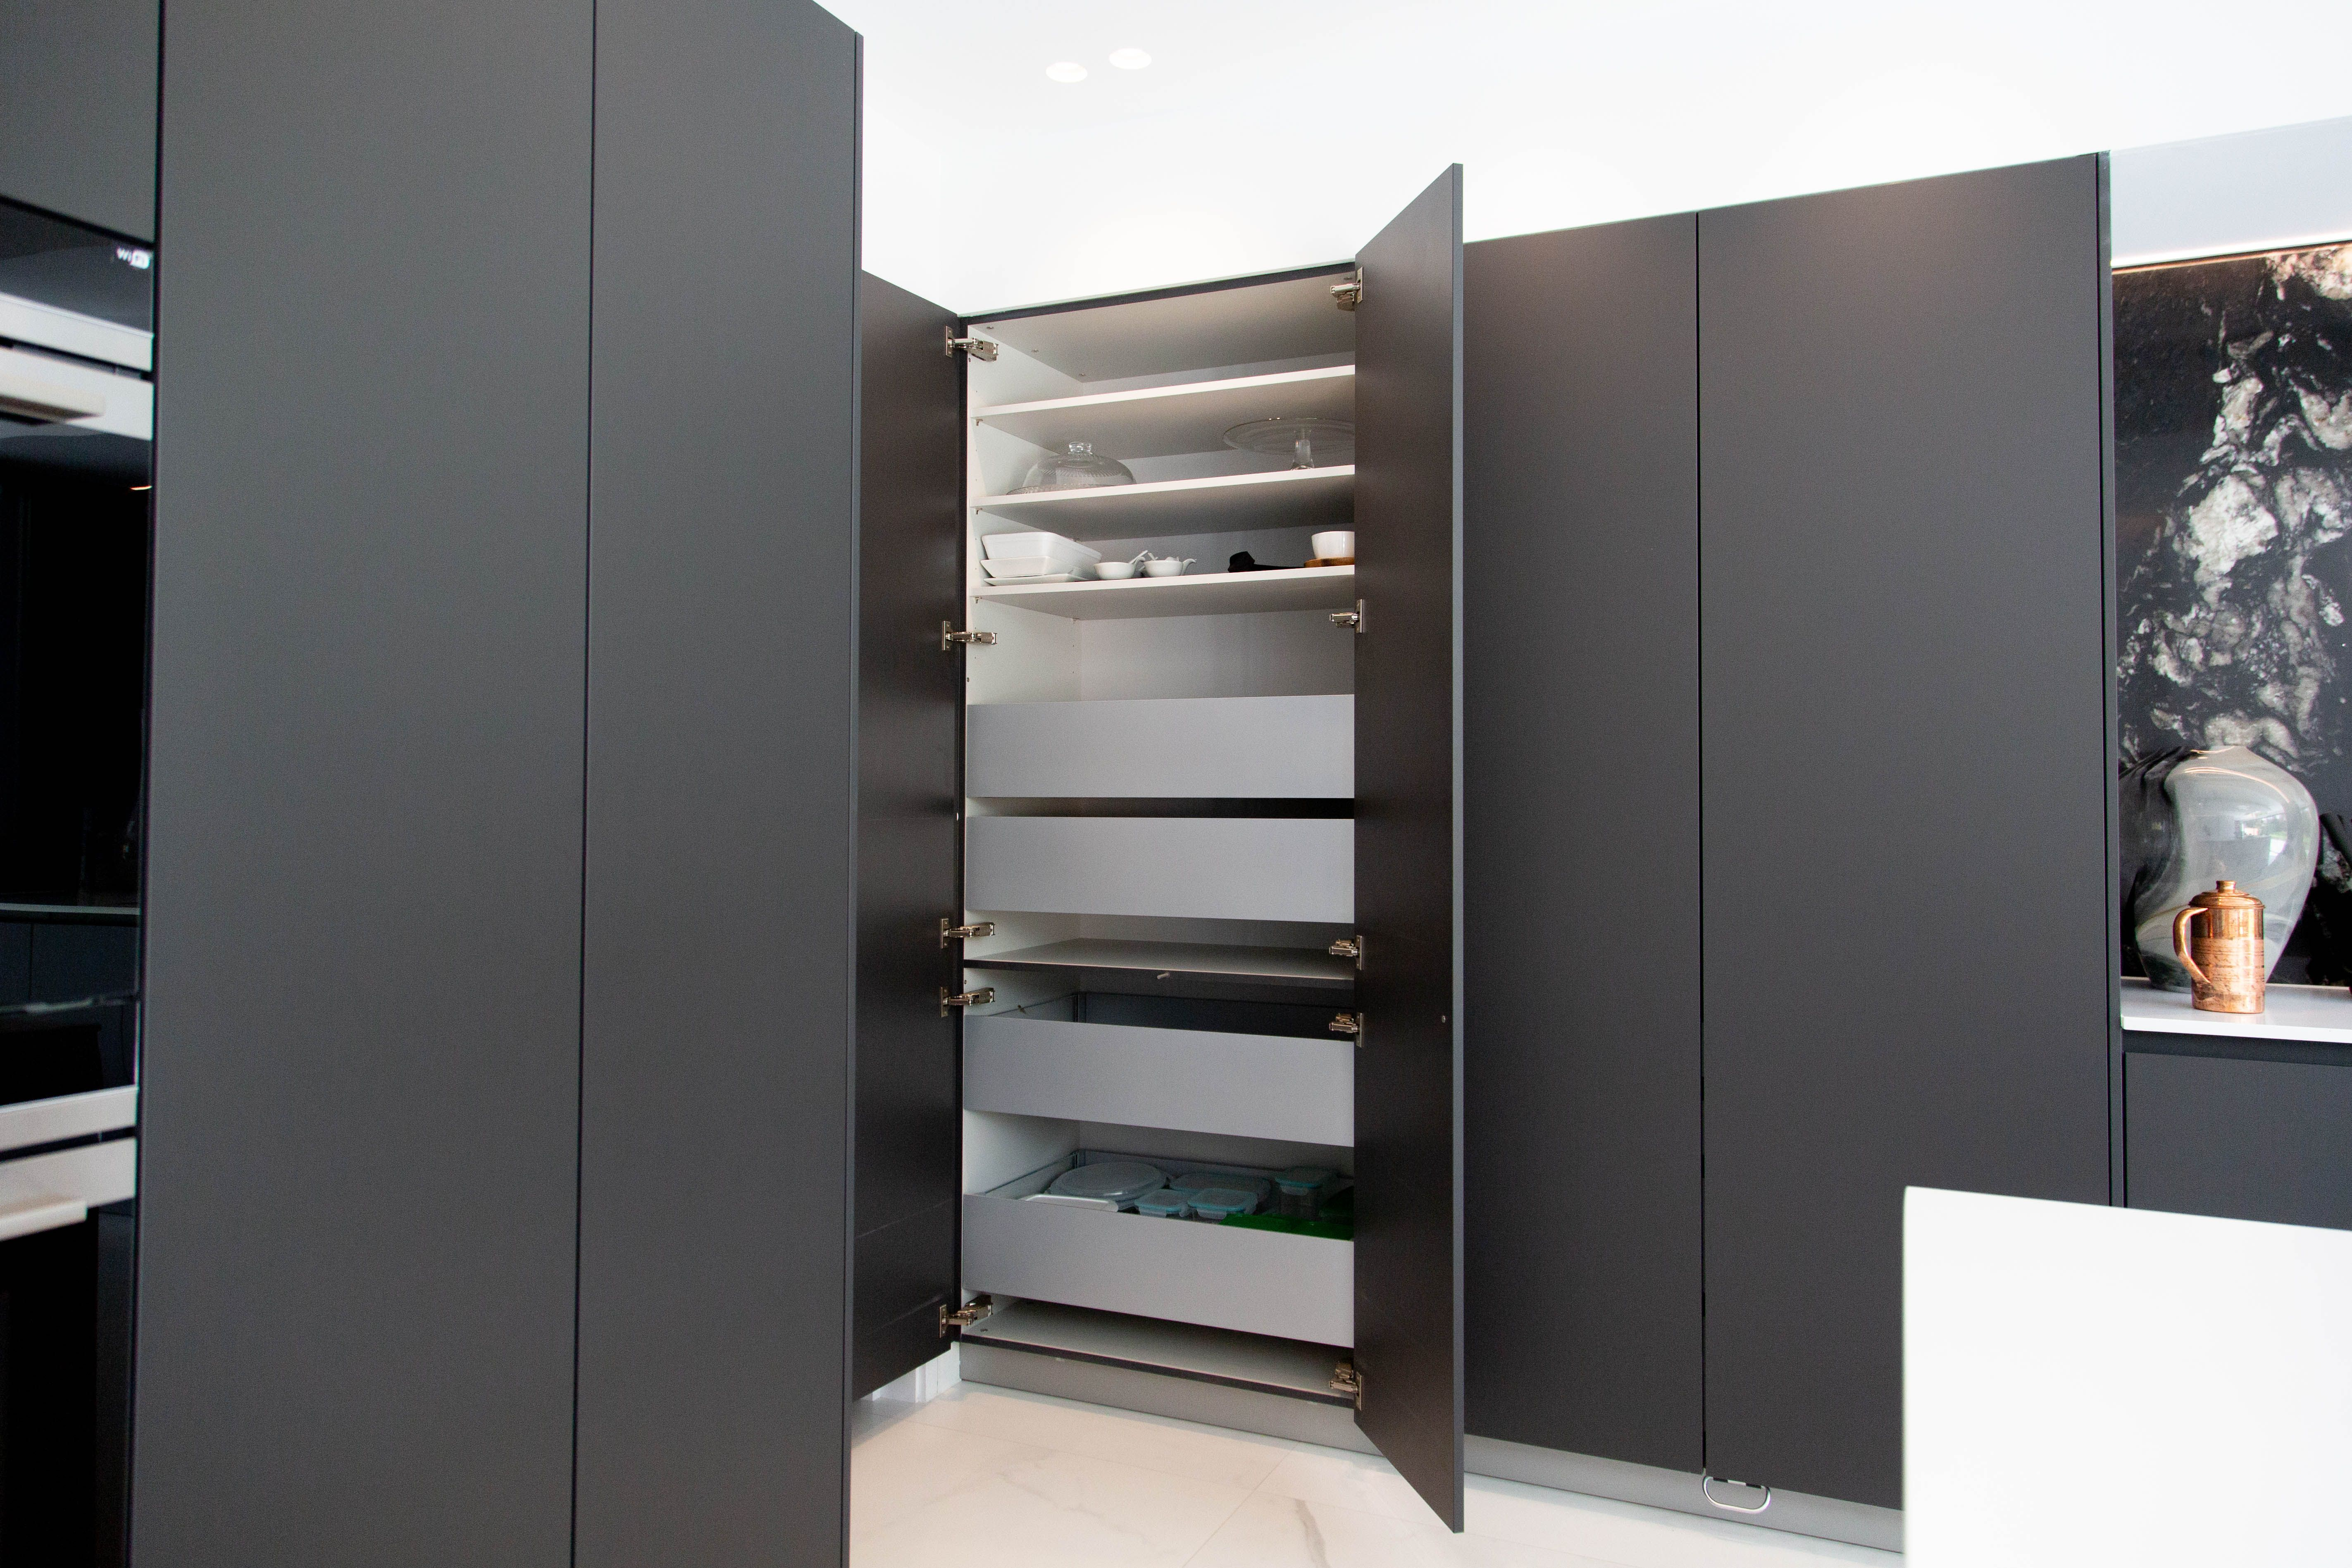 Inside kitchen double pantry units. Based in Wembley, this